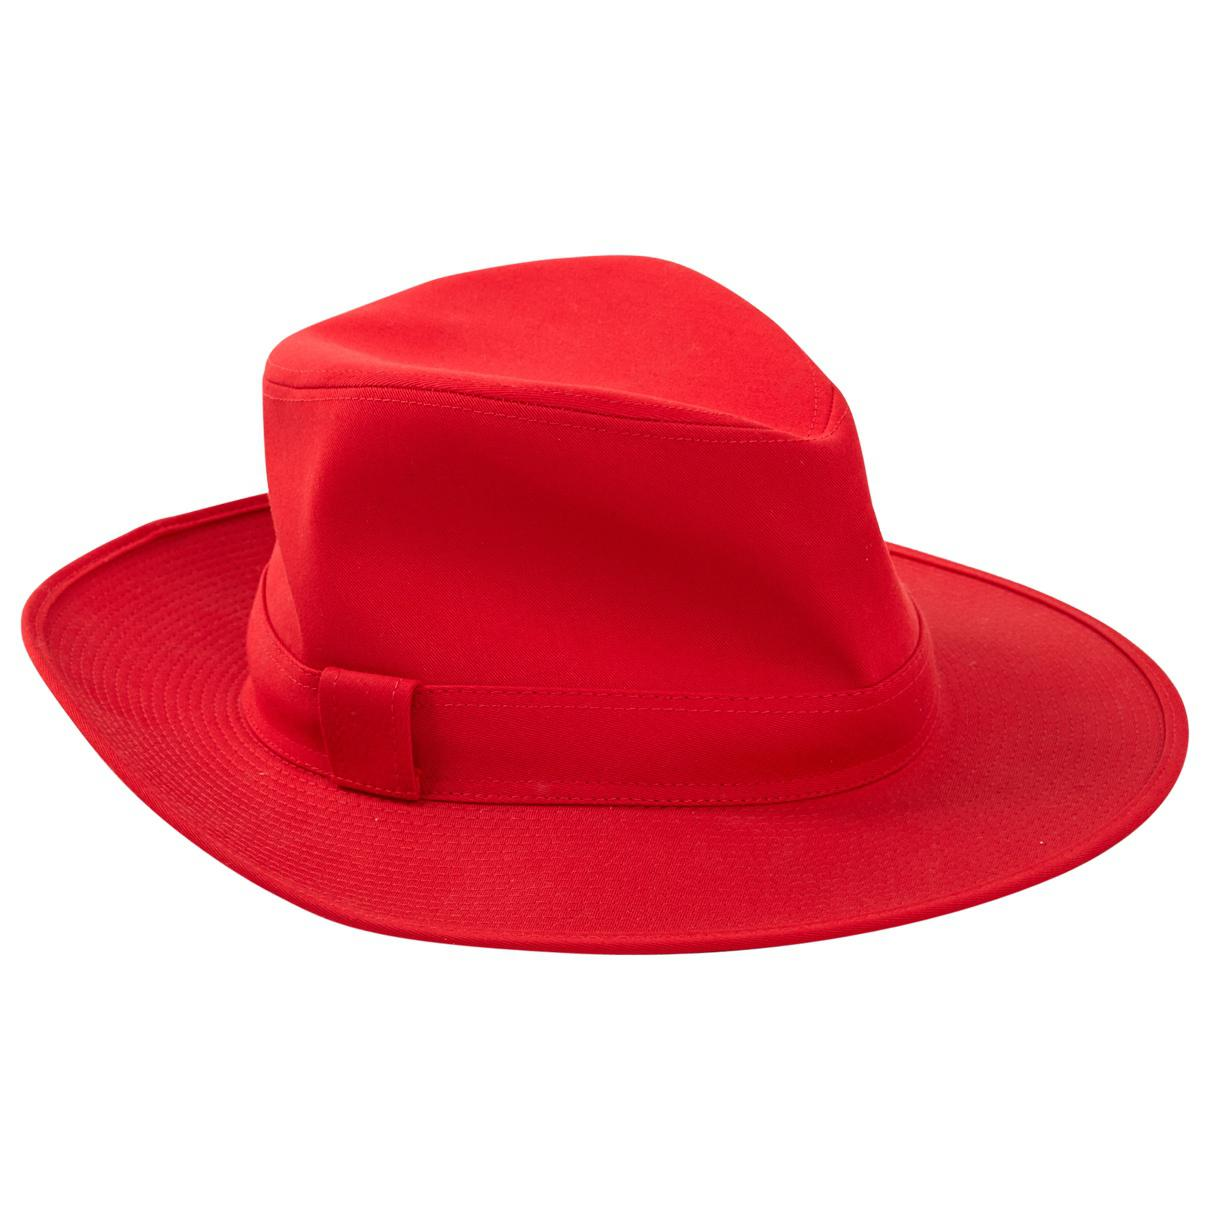 4b9298cc07dd9 Hermès. Women s Red Cotton Hats.  283 From Vestiaire Collective